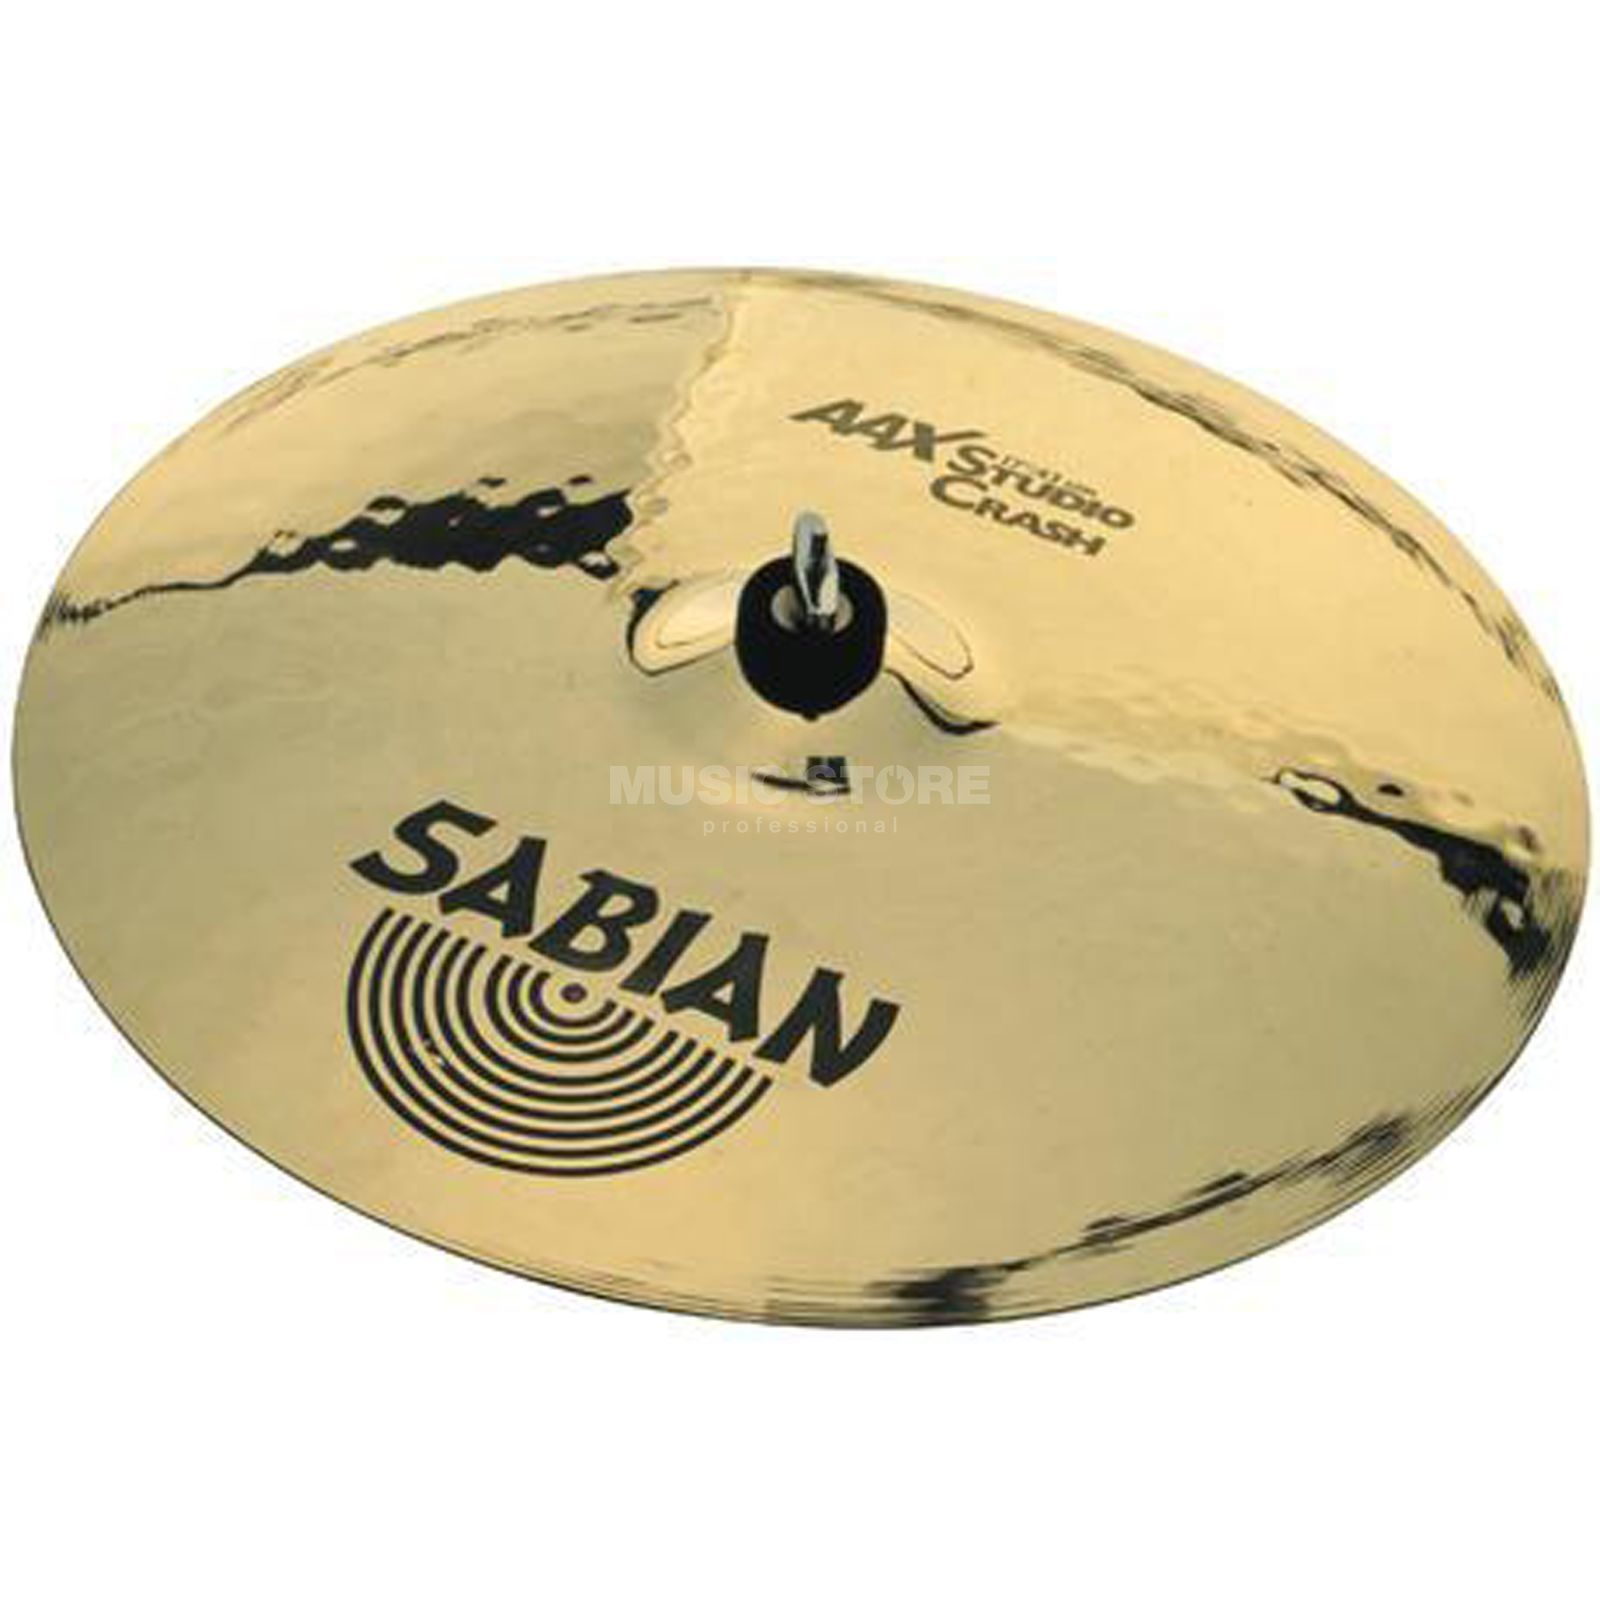 "Sabian AAX Crash Studio 16"" finition brillante Image du produit"